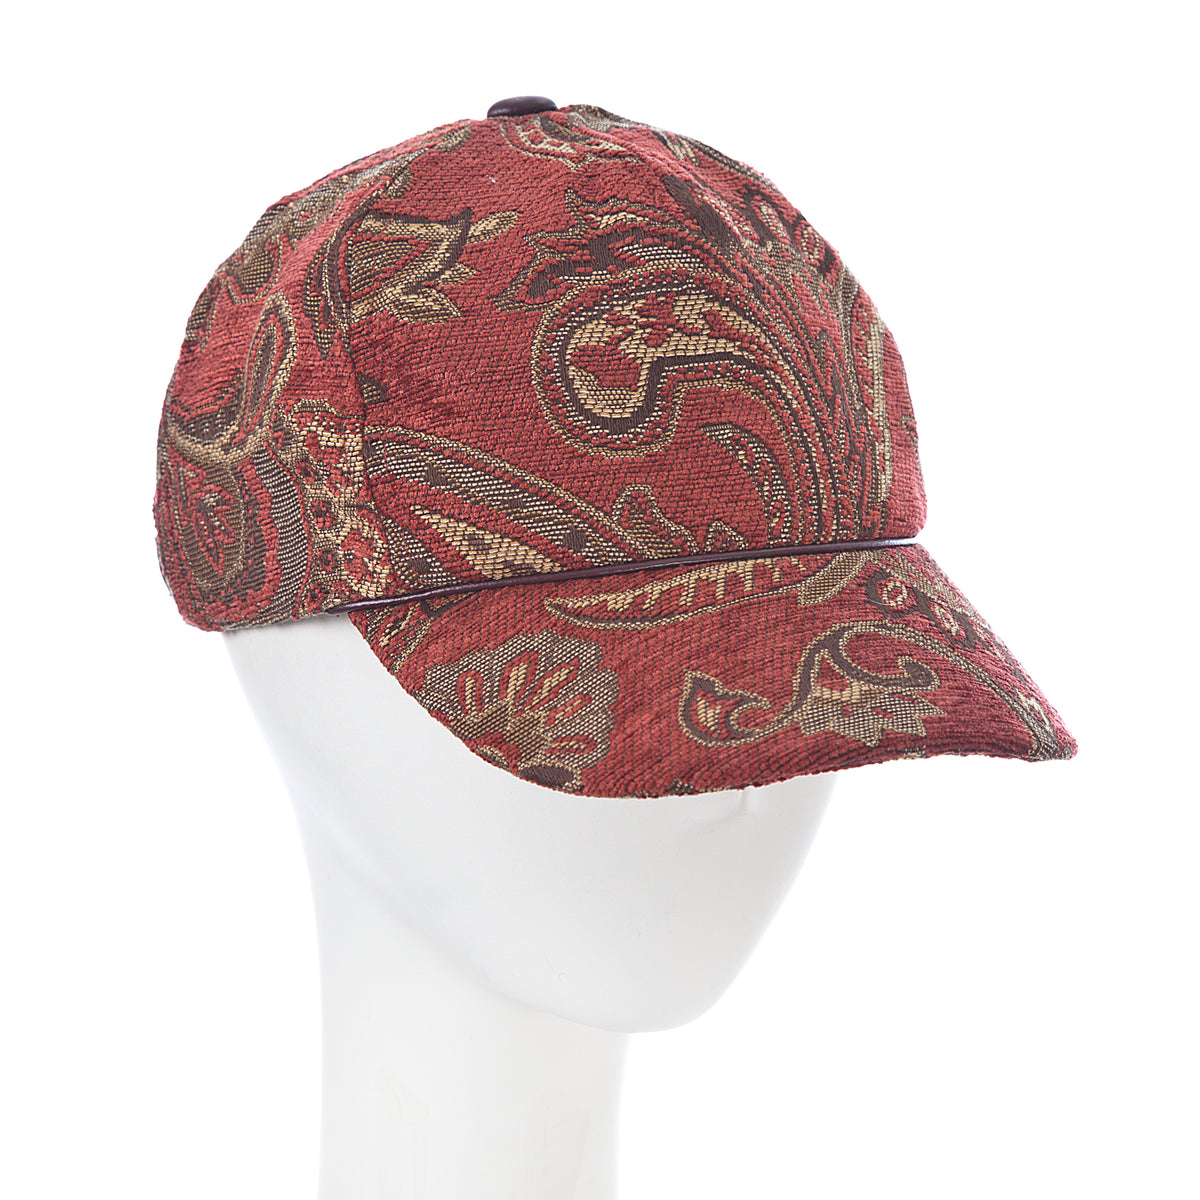 red tapestry patterned ball cap